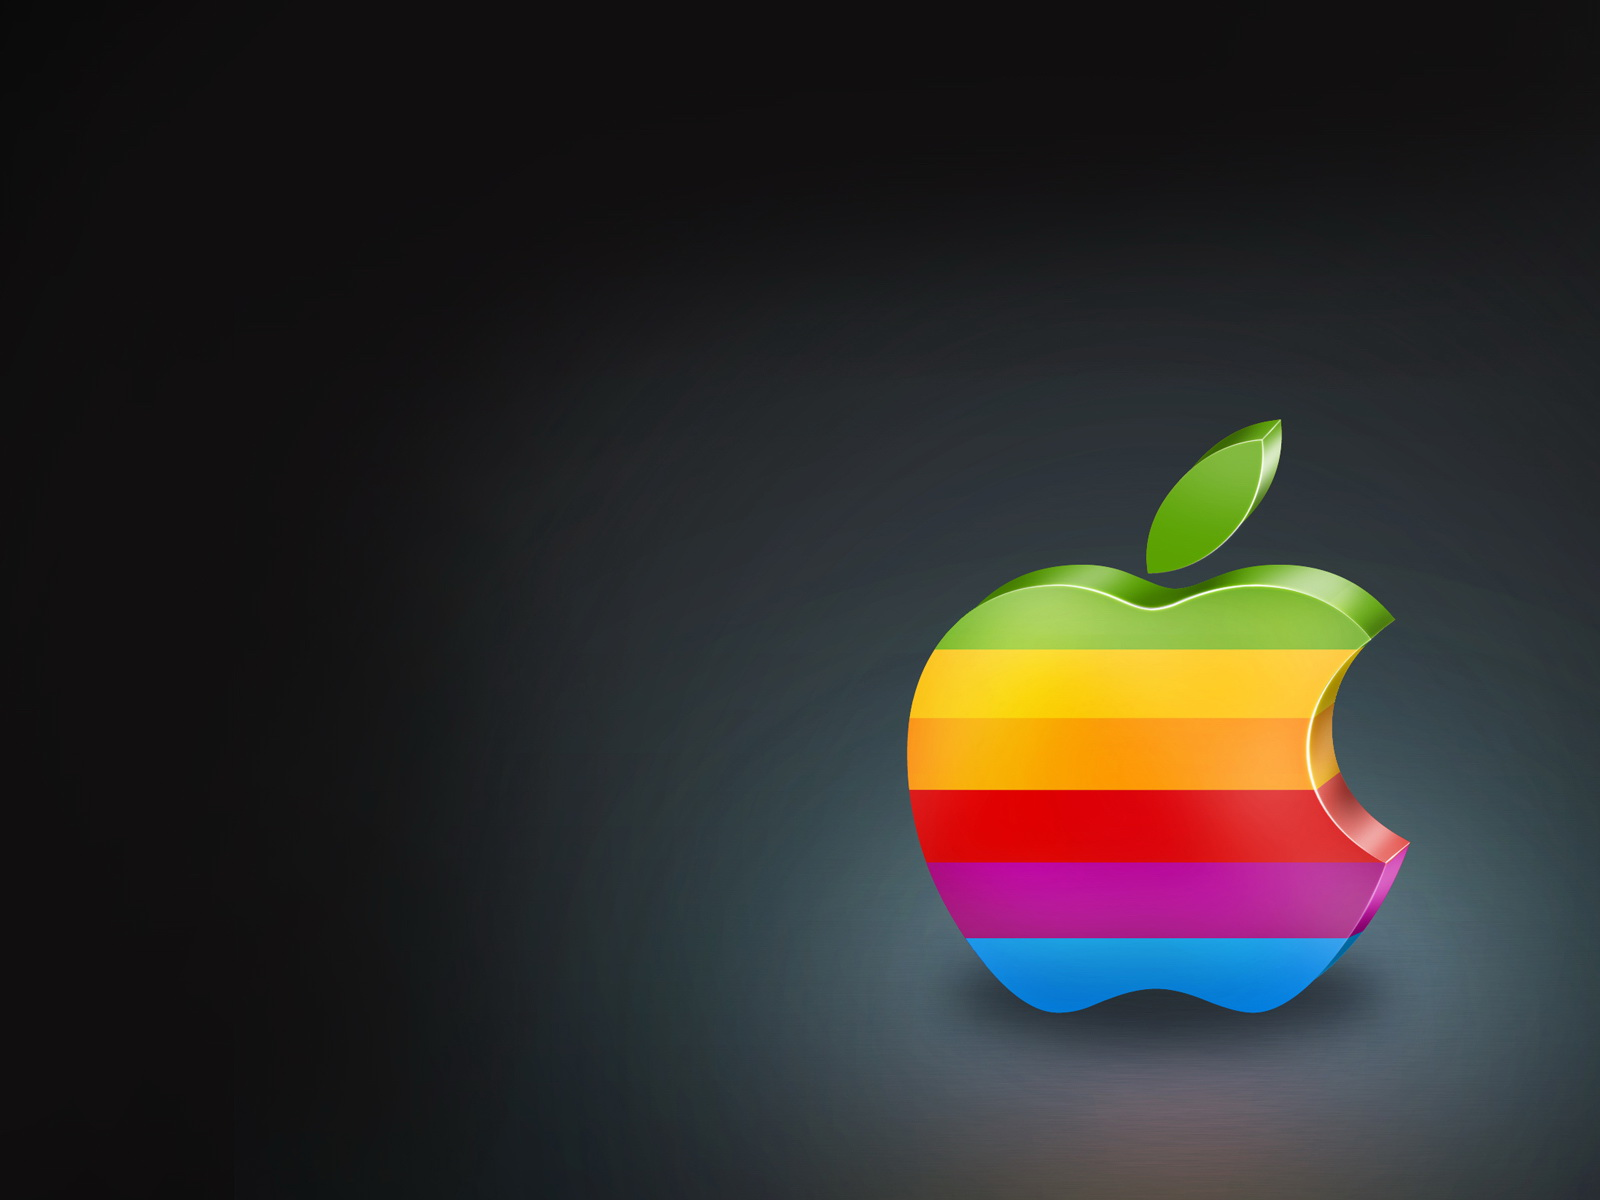 Colorful Apple Logo 762.36 Kb